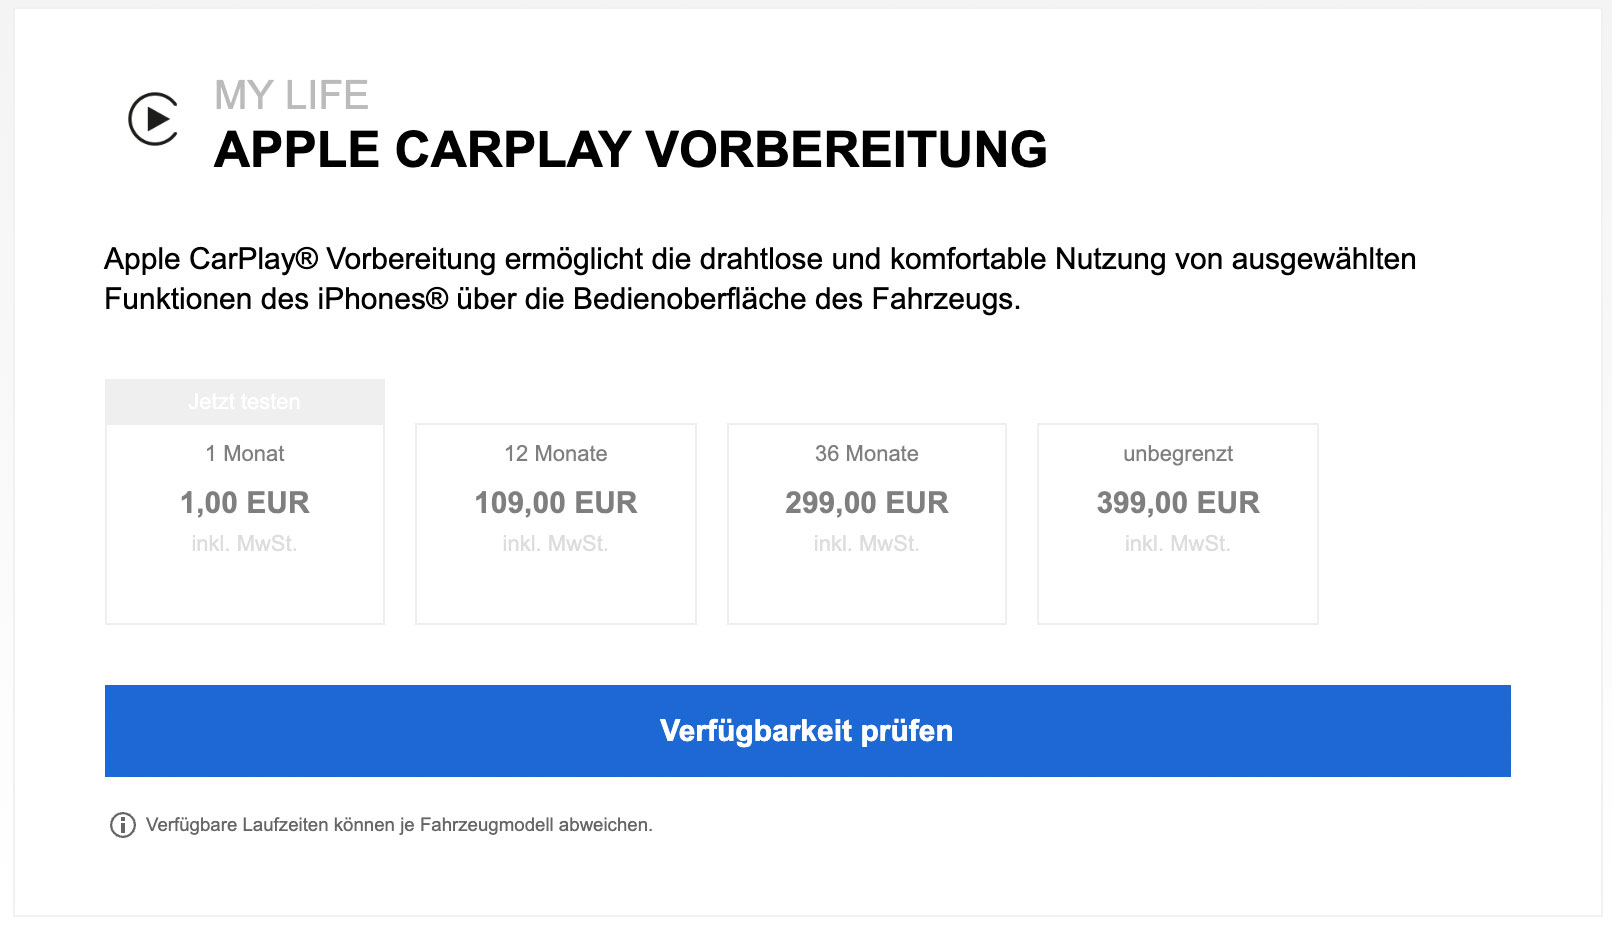 Carplay Vorbereitung